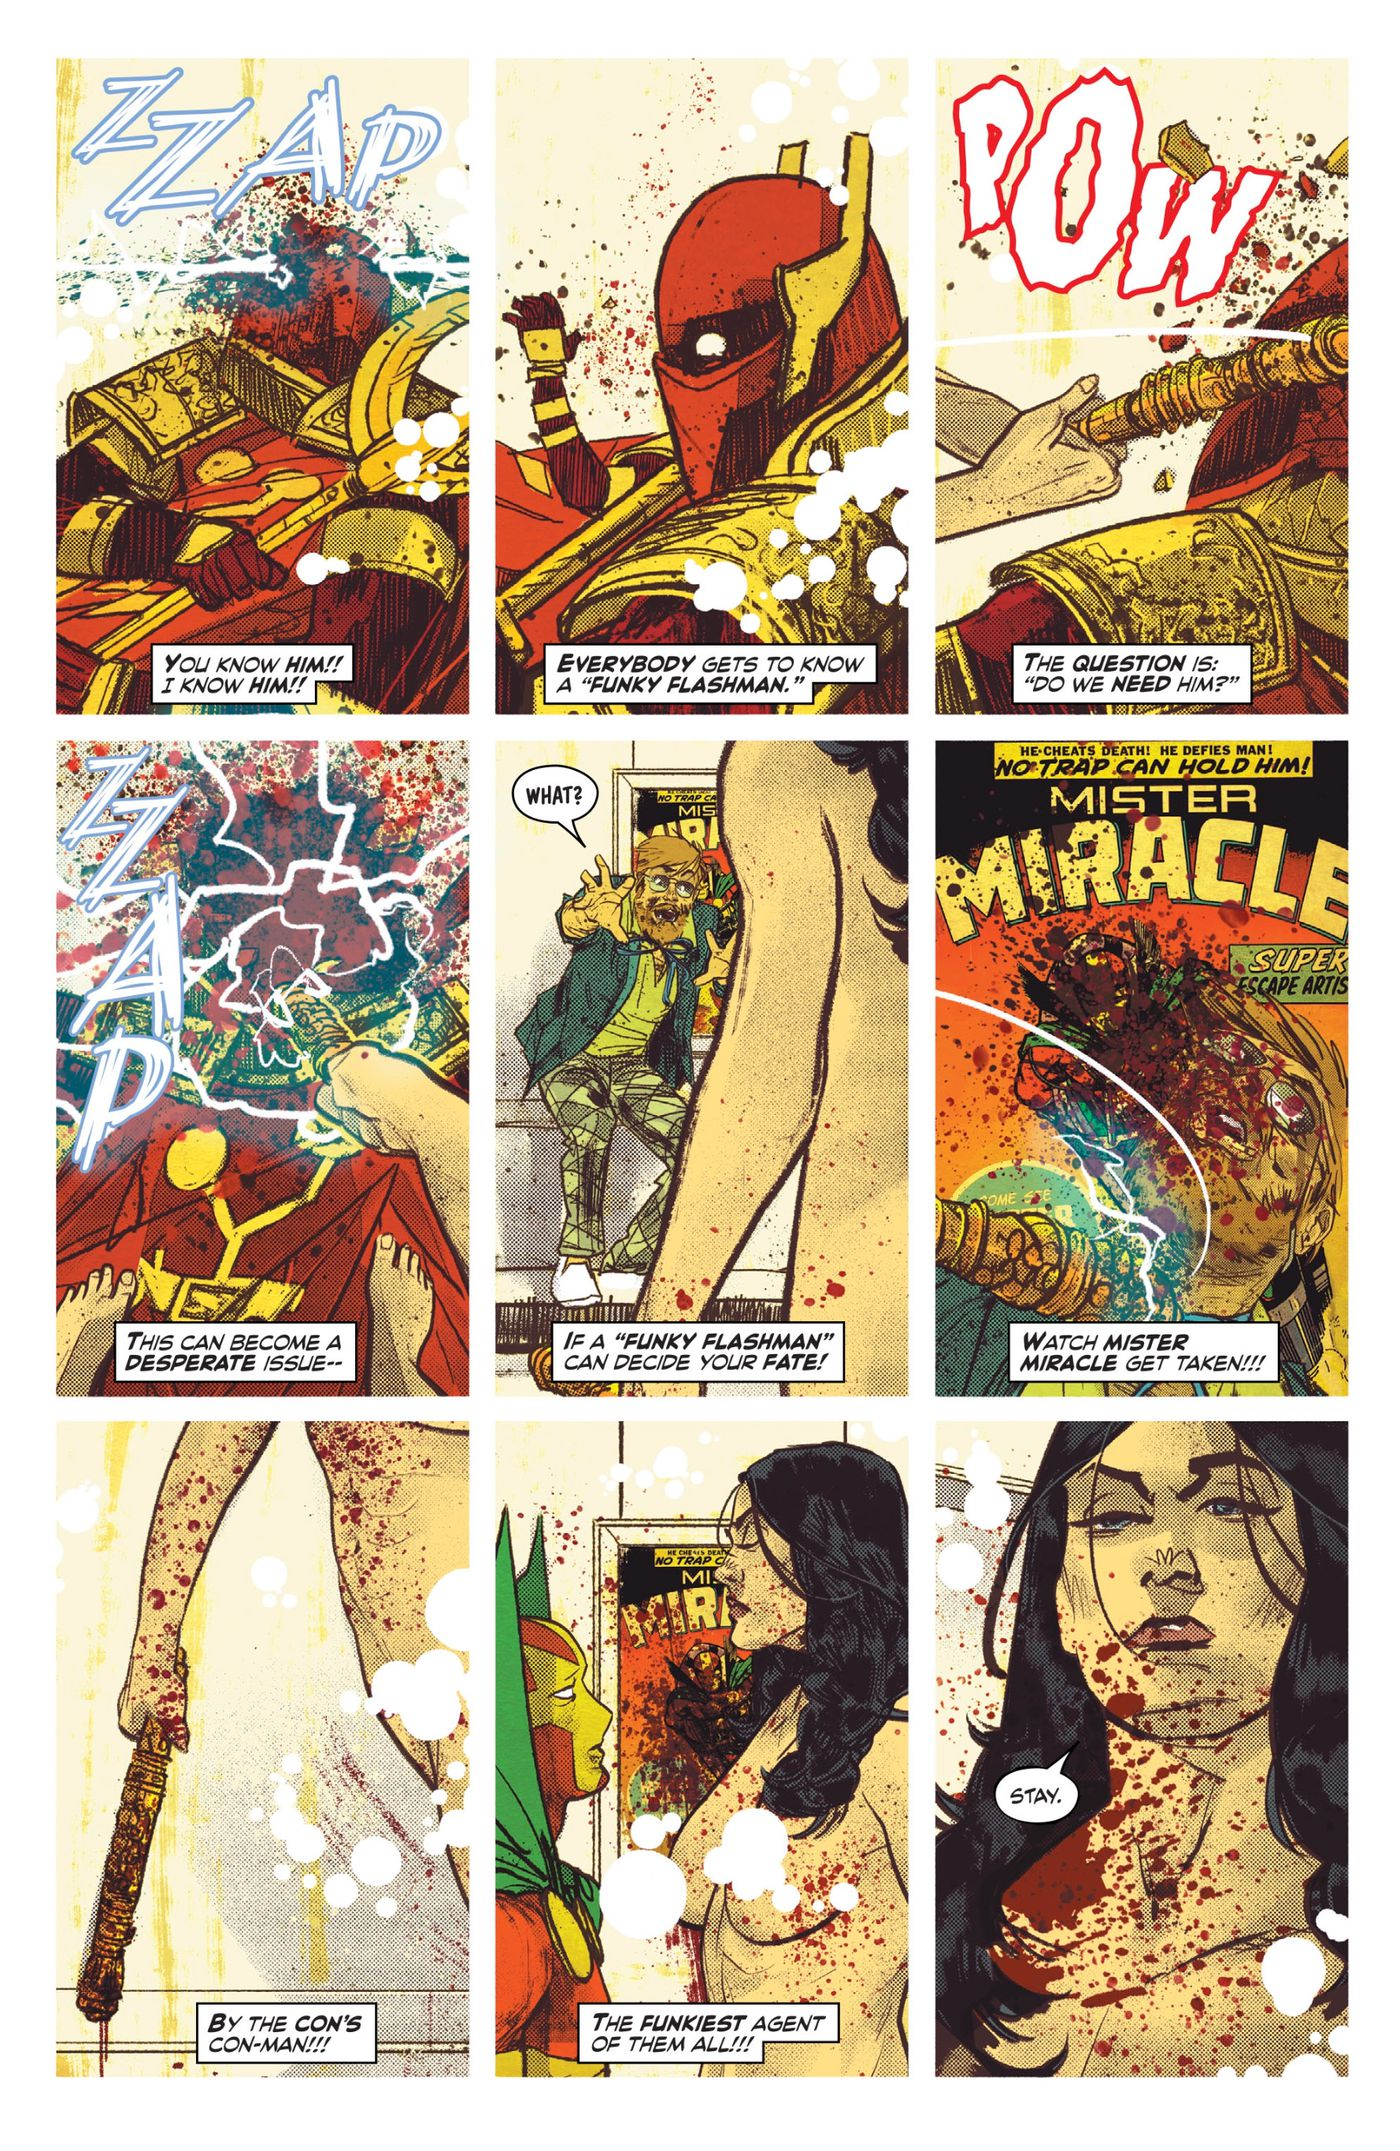 DC Comics' Mister Miracle: an annotated guide to every